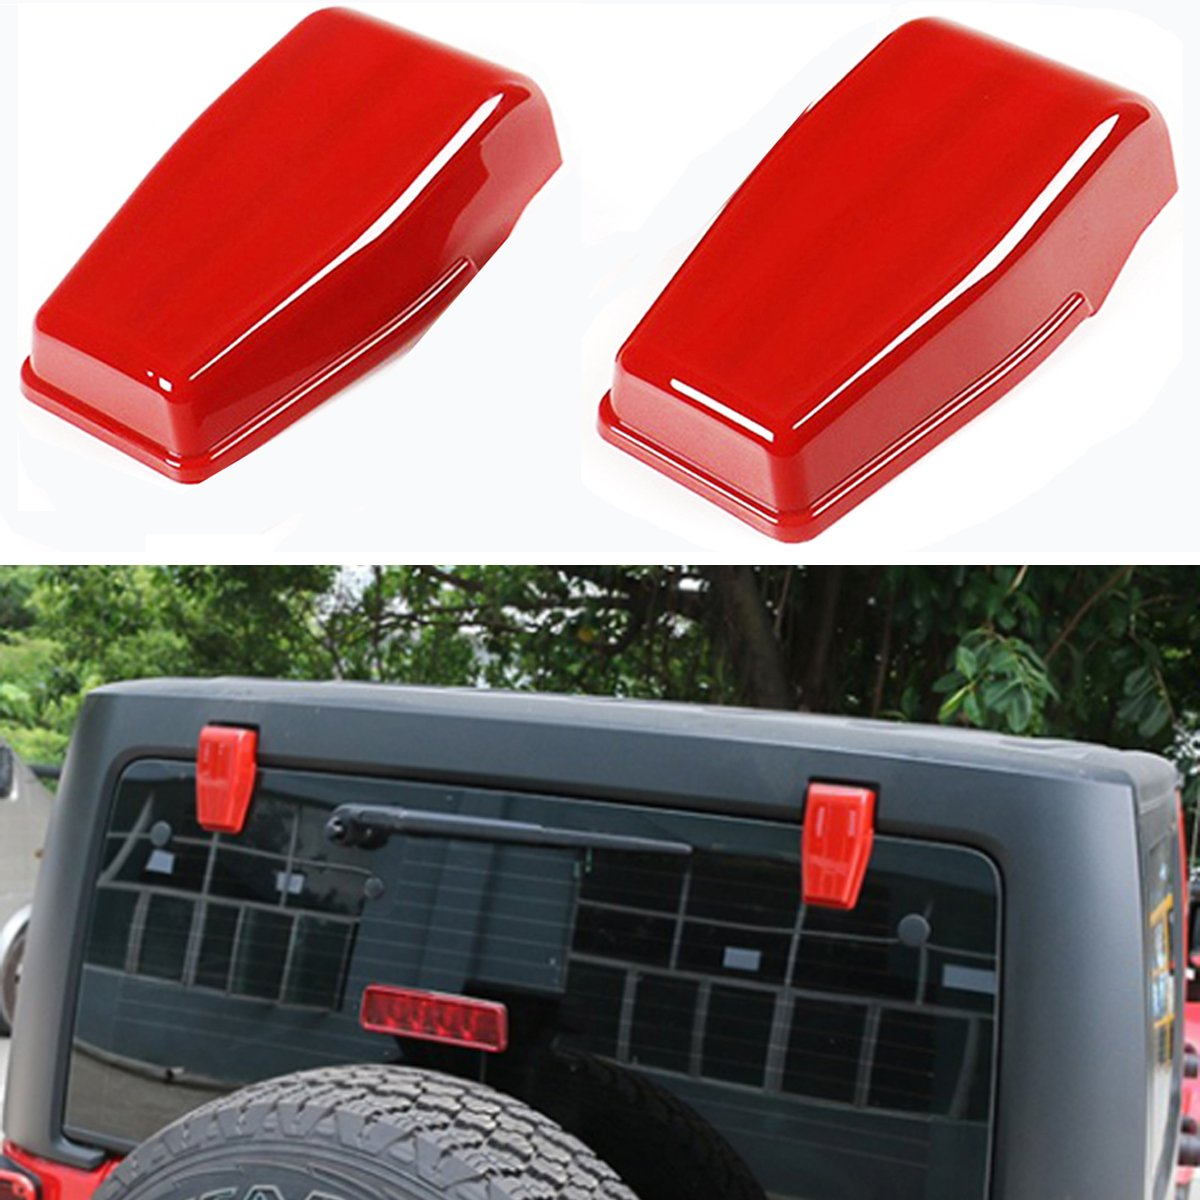 MOEBULB Tailgate Hinge Cover Spare Tire Rear Door Liftgate Trim for 2007-2017 Jeep Wrangler JK /& Unlimited Red,2-Pack